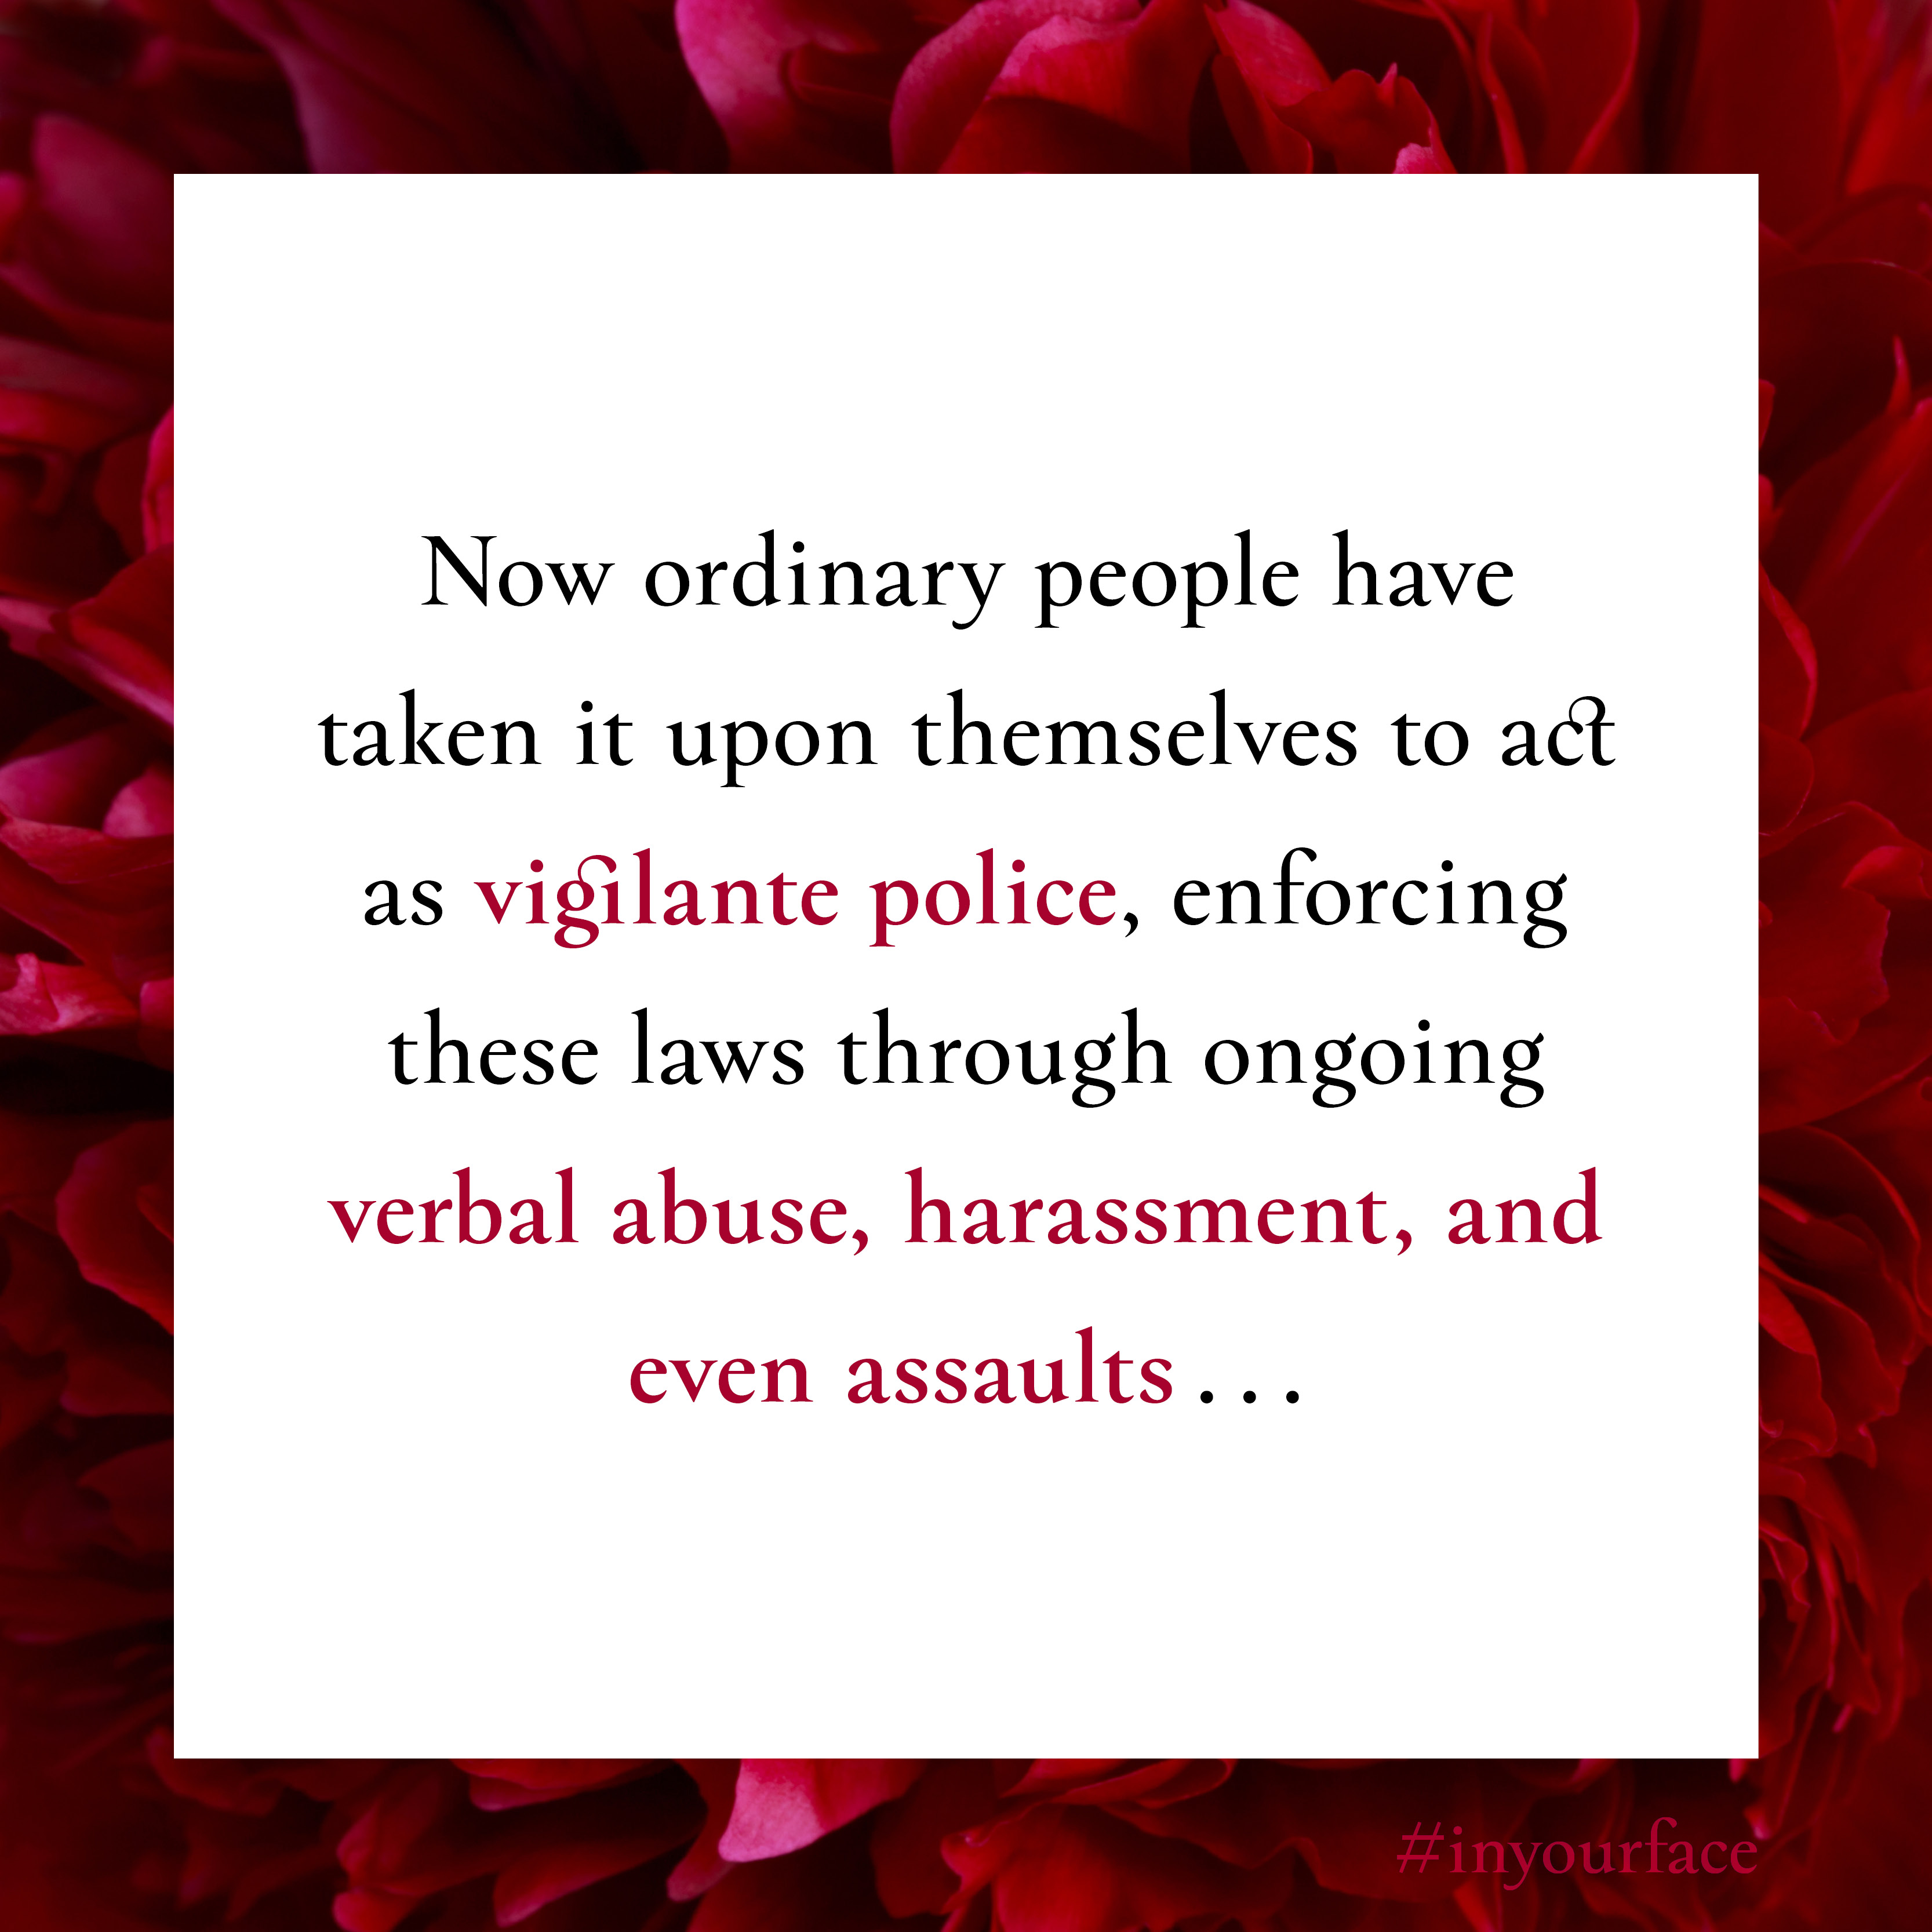 """Excerpt from In Your Face by Natasha Bakht. It reads: """"Now ordinary people have taken it upon themselves to act as vigilante police, enforcing these laws through ongoing verbal abuse, harassment, and even assaults..."""""""